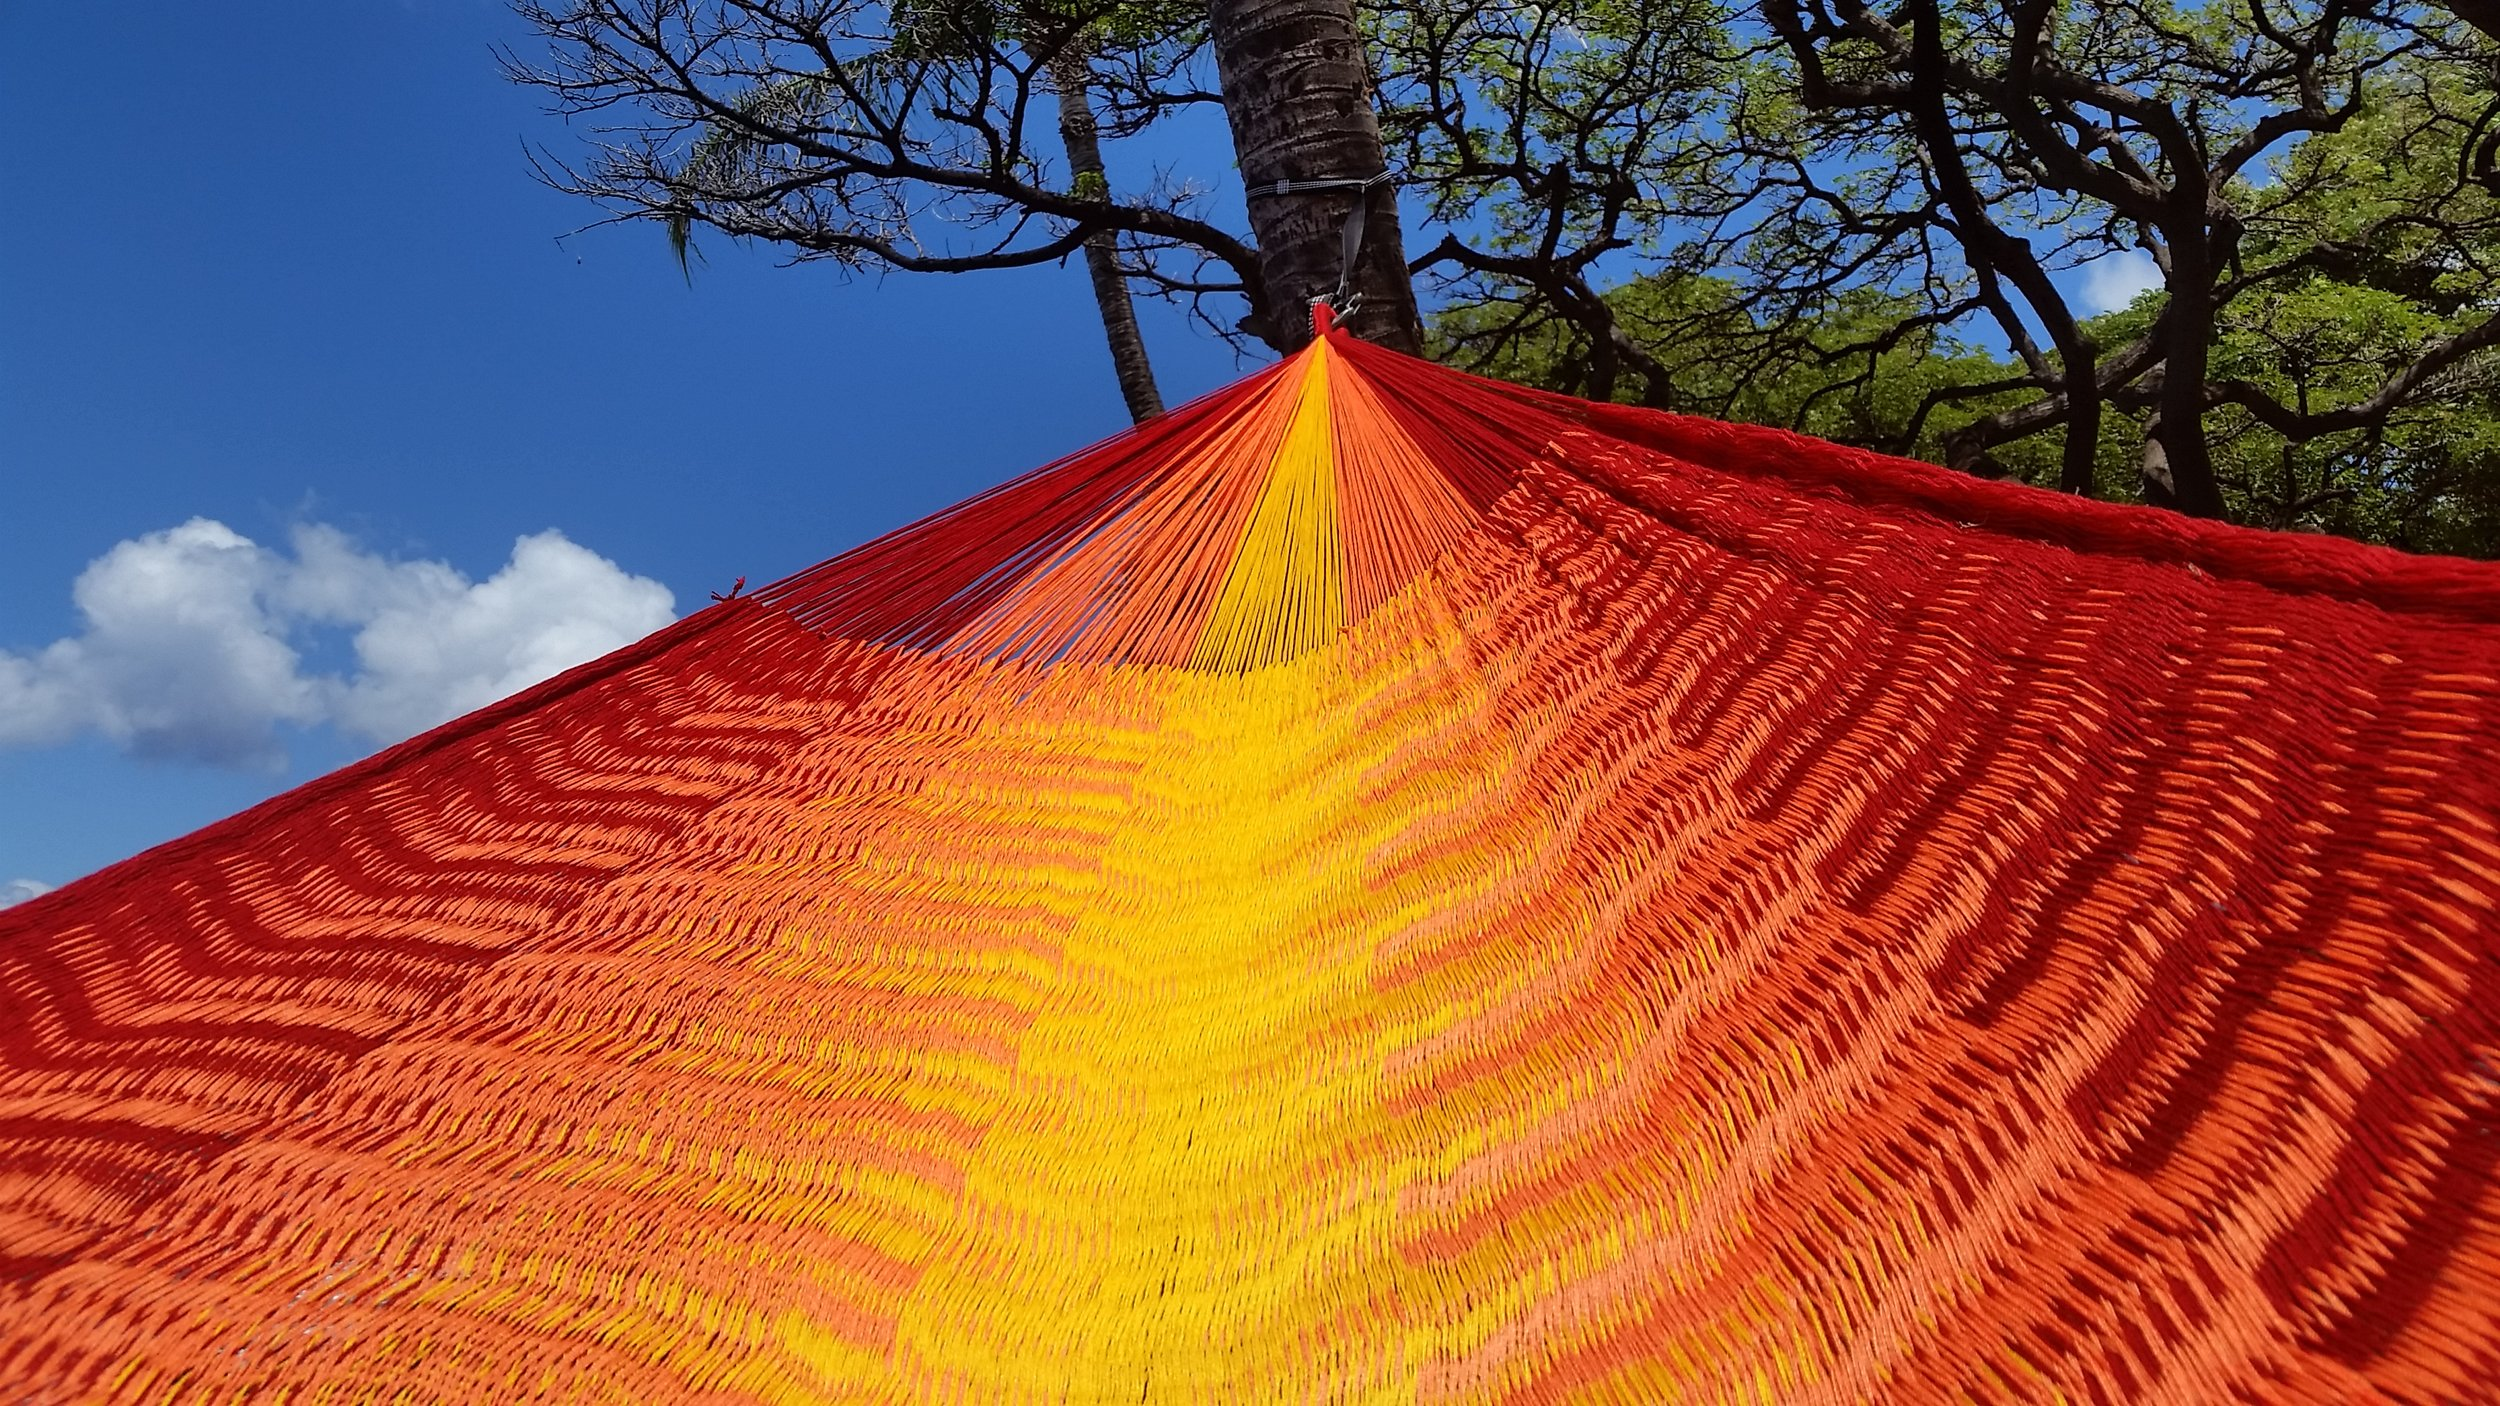 """(Contact us for colors available as they change daily)   Referred to as the """"V-Weave"""", this hammock is considered to be the Rolls Royce of hammocks. Extra large and luxurious. The V-Weaveing technique causes a subtle color change when the hammock is in motion. The densely woven technique results in a hammock that is incomparable in both comfort and beauty. It takes a specialist weaver up to 3 weeks to produce just one of these hammocks. From 3km of yarn and over 150,000 loops, woven with ultra soft triple acrylic yarn. This hammock is the worlds finest. We carry a very limited number of these a year.We label each hammocks after our favorite surf breaks.Kicking back in one of these hammocks while enjoying an afternoon admiring the scene, is sure to make an impression."""